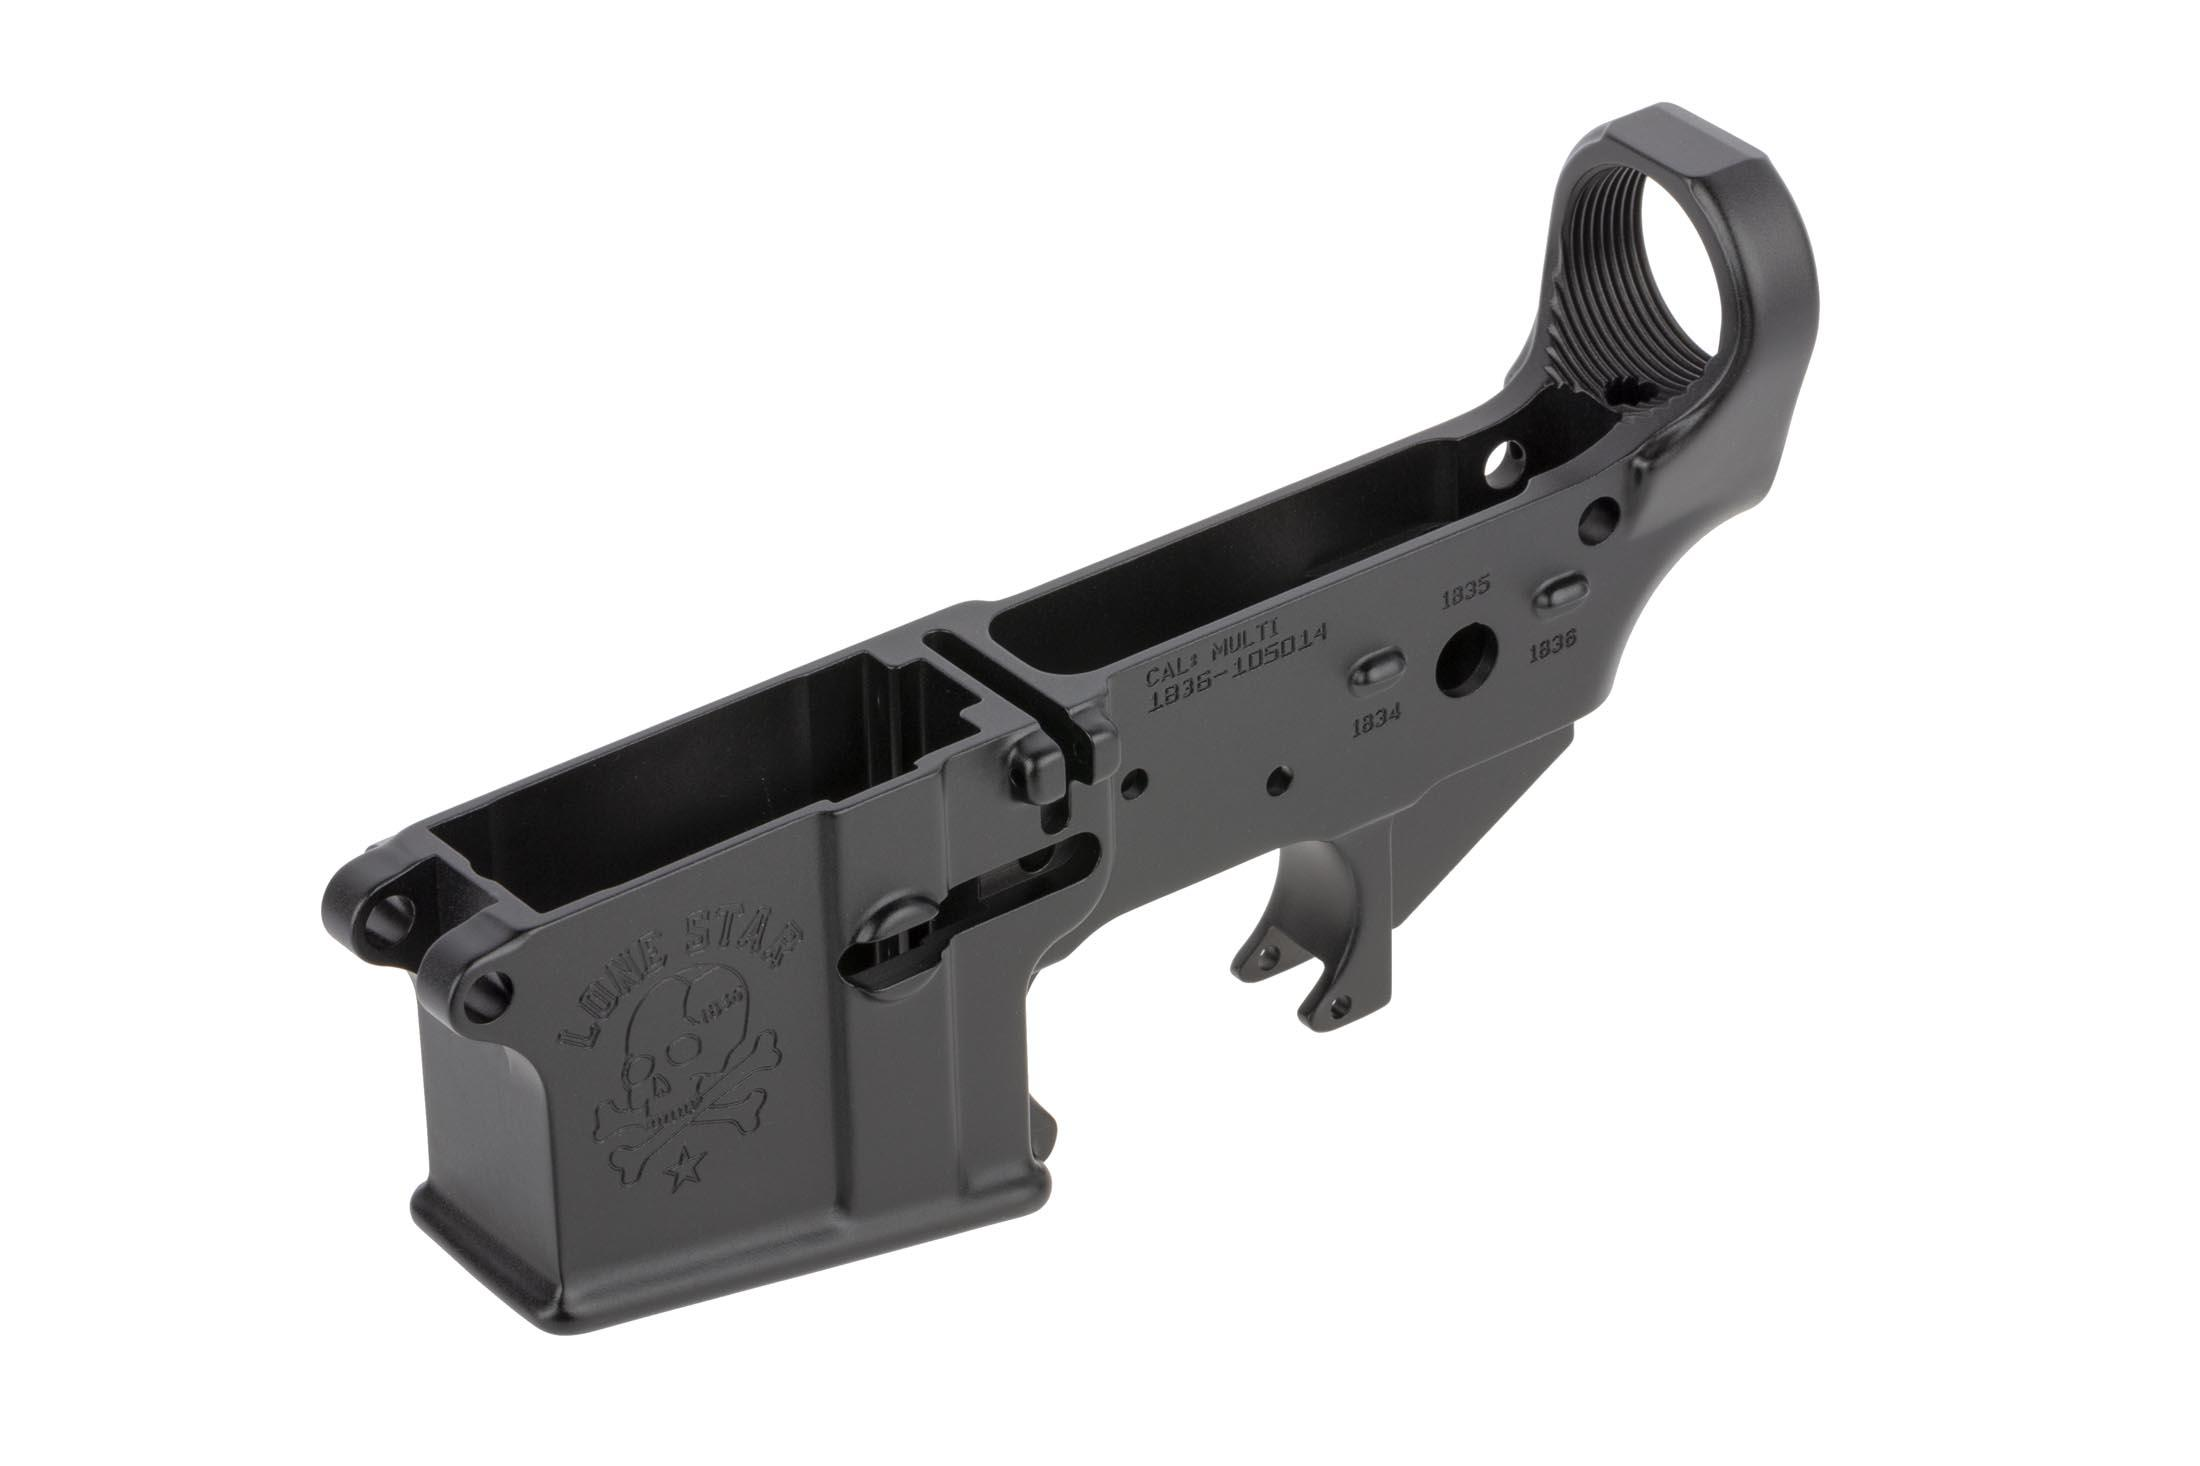 SoLGW stripped aR-15 lower receiver features the Lone Star logo on the left hand side of the magazine well